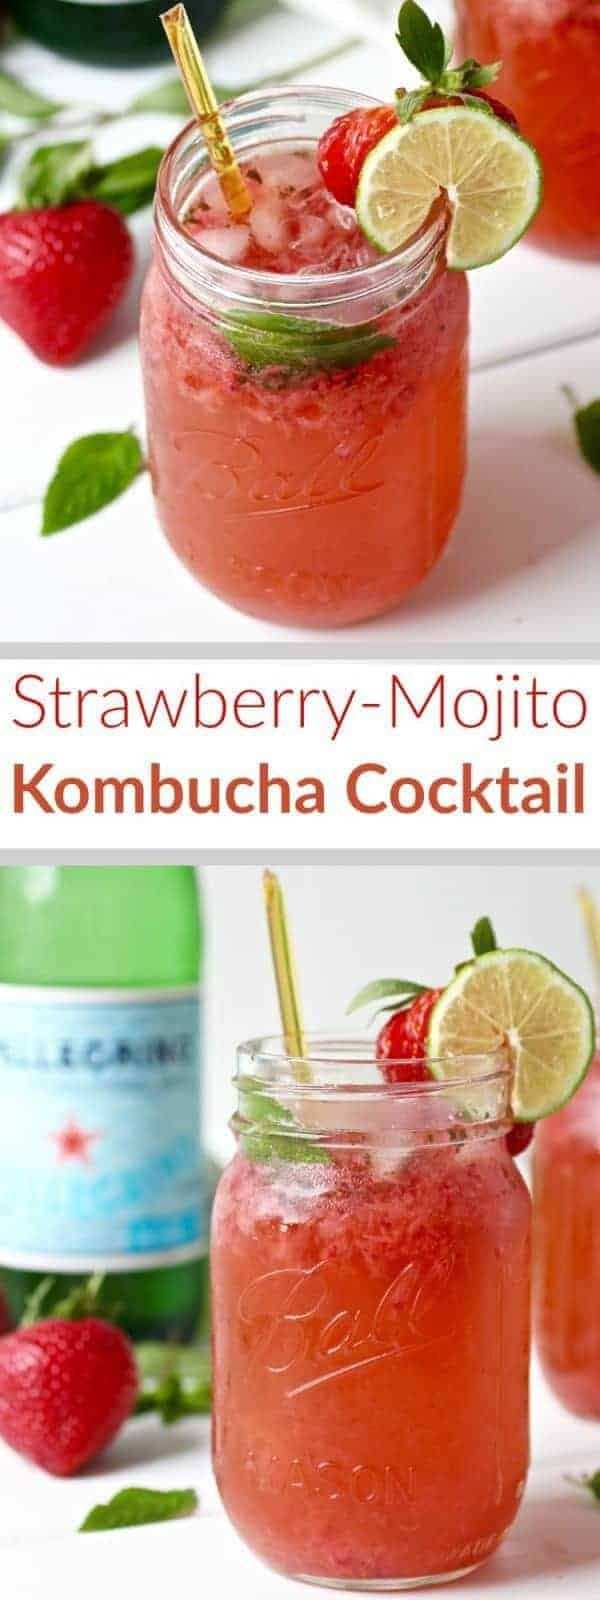 Your new favorite cocktail has arrived! This Strawberry Mojito Kombucha Cocktail is perfect for summertime. It's refreshing, fruity and has no-added sugars! | www.therealfoodrds.com